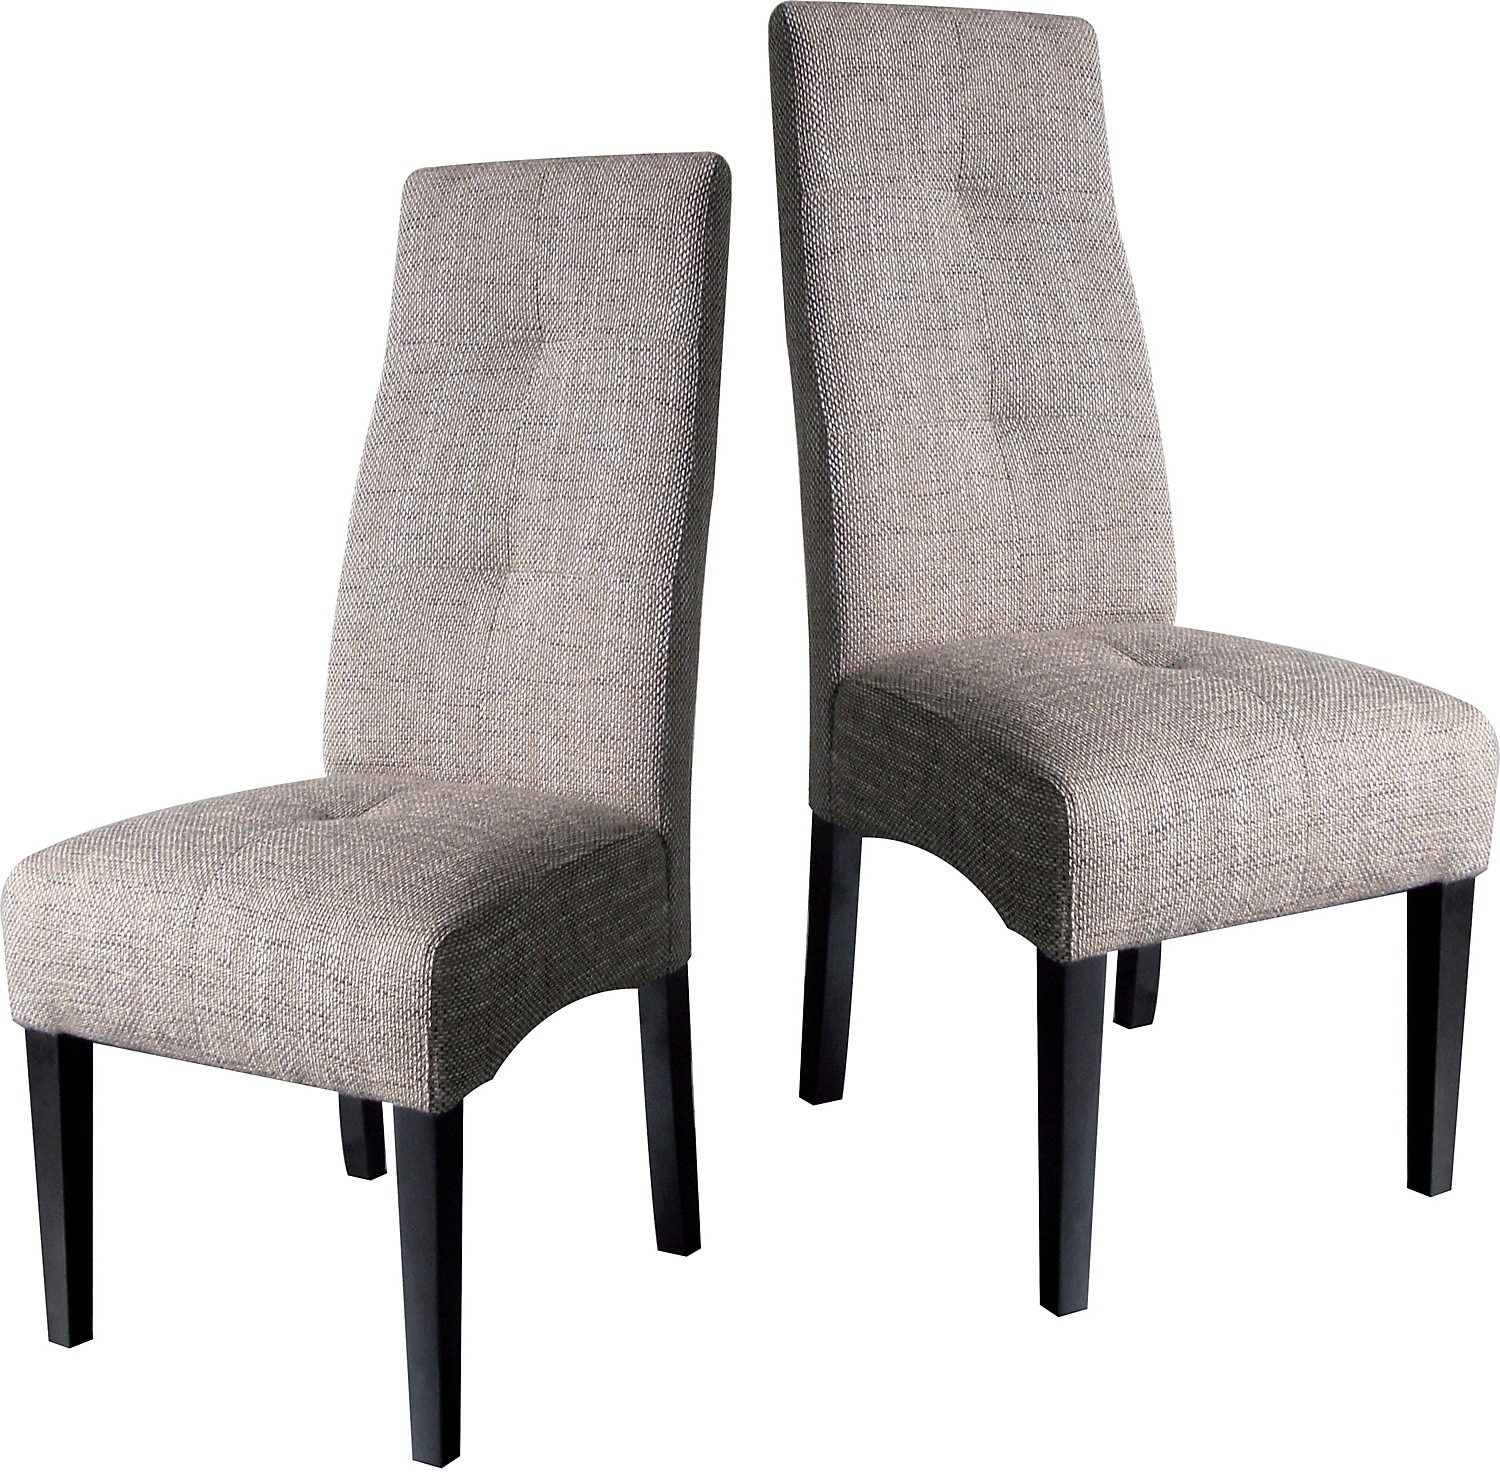 Idea Beige Linen Two Chair Package